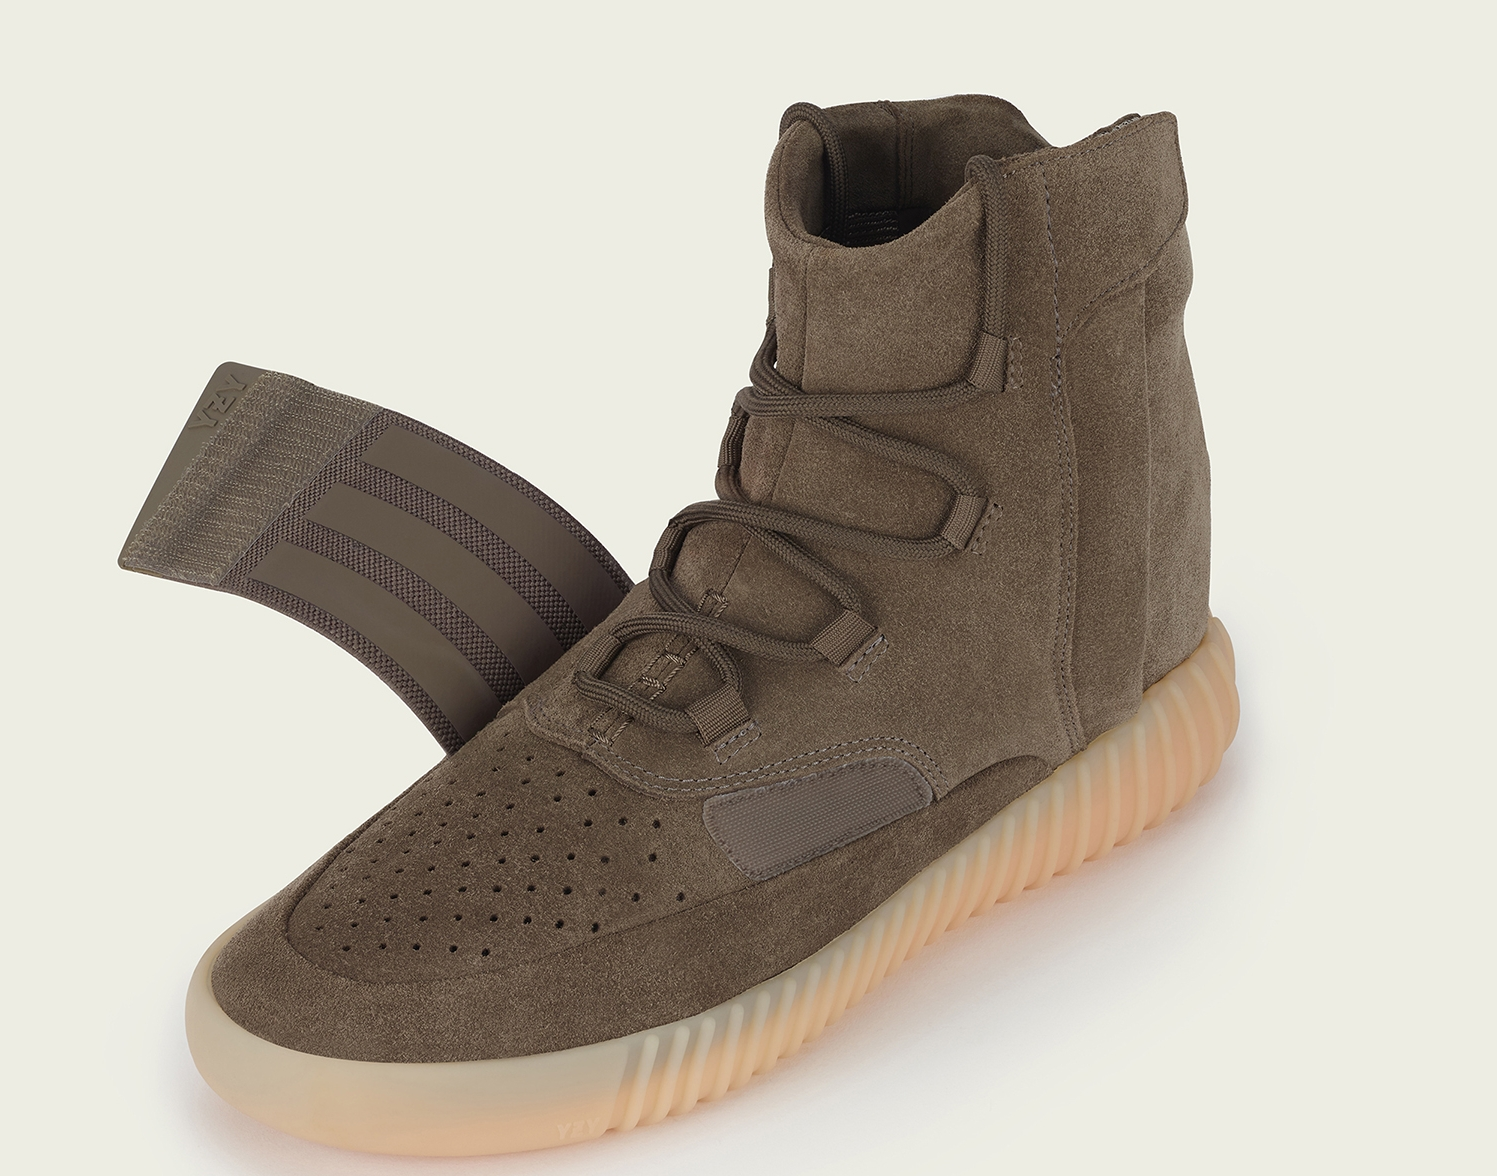 0ec56e0d19c8 Image via Nikelab.jp · Adidas Yeezy 750 Boost Chocolate BY2456 Unstrapped